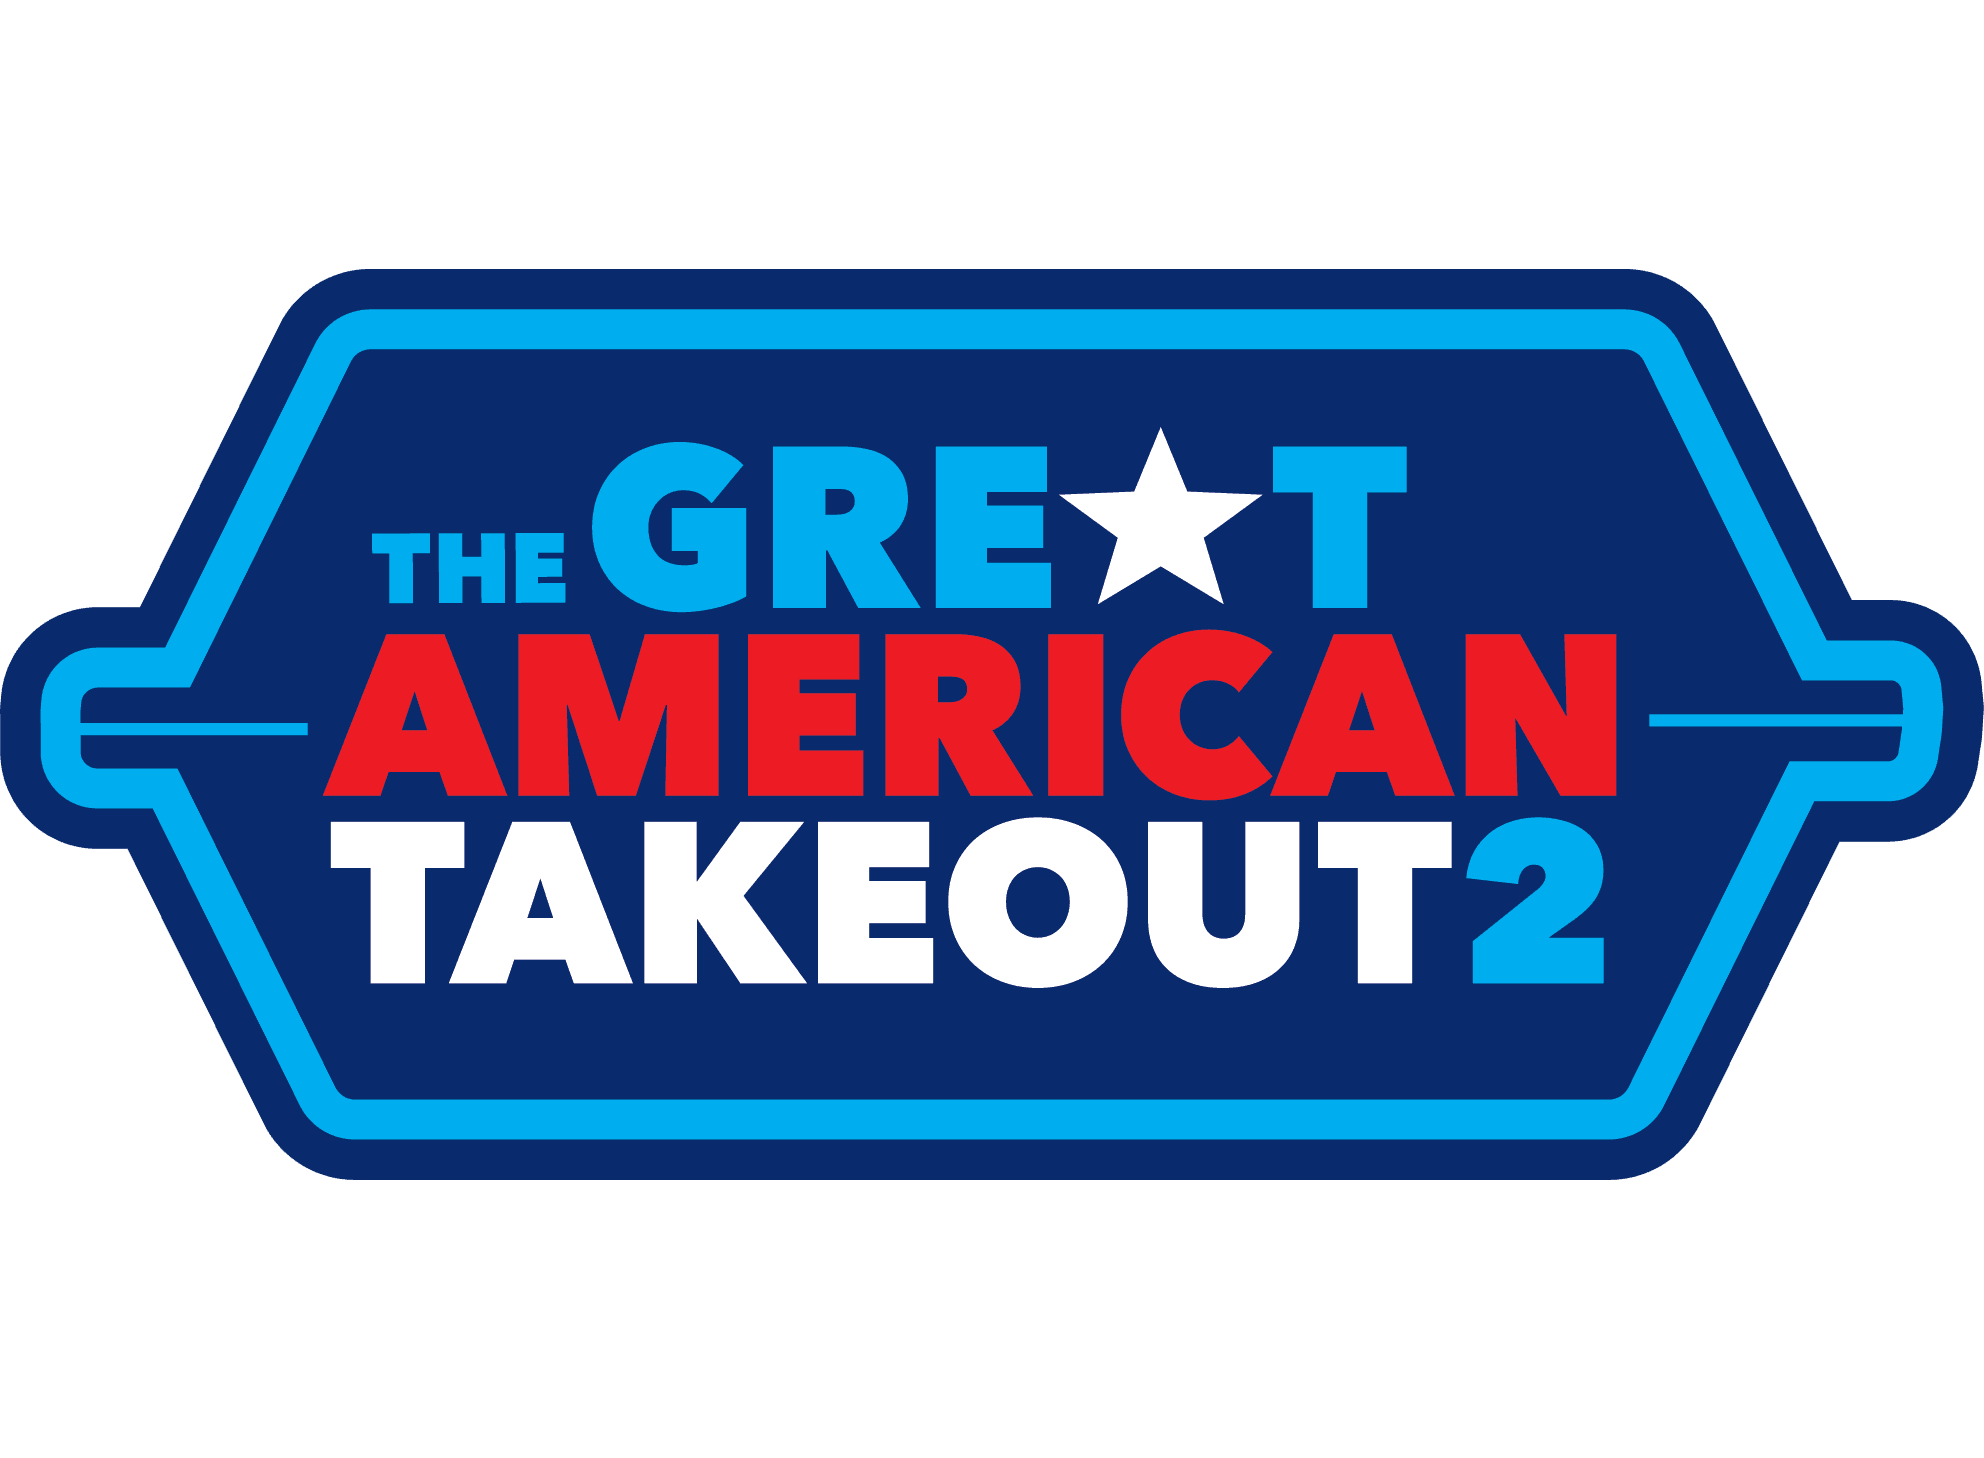 Great American Takeout